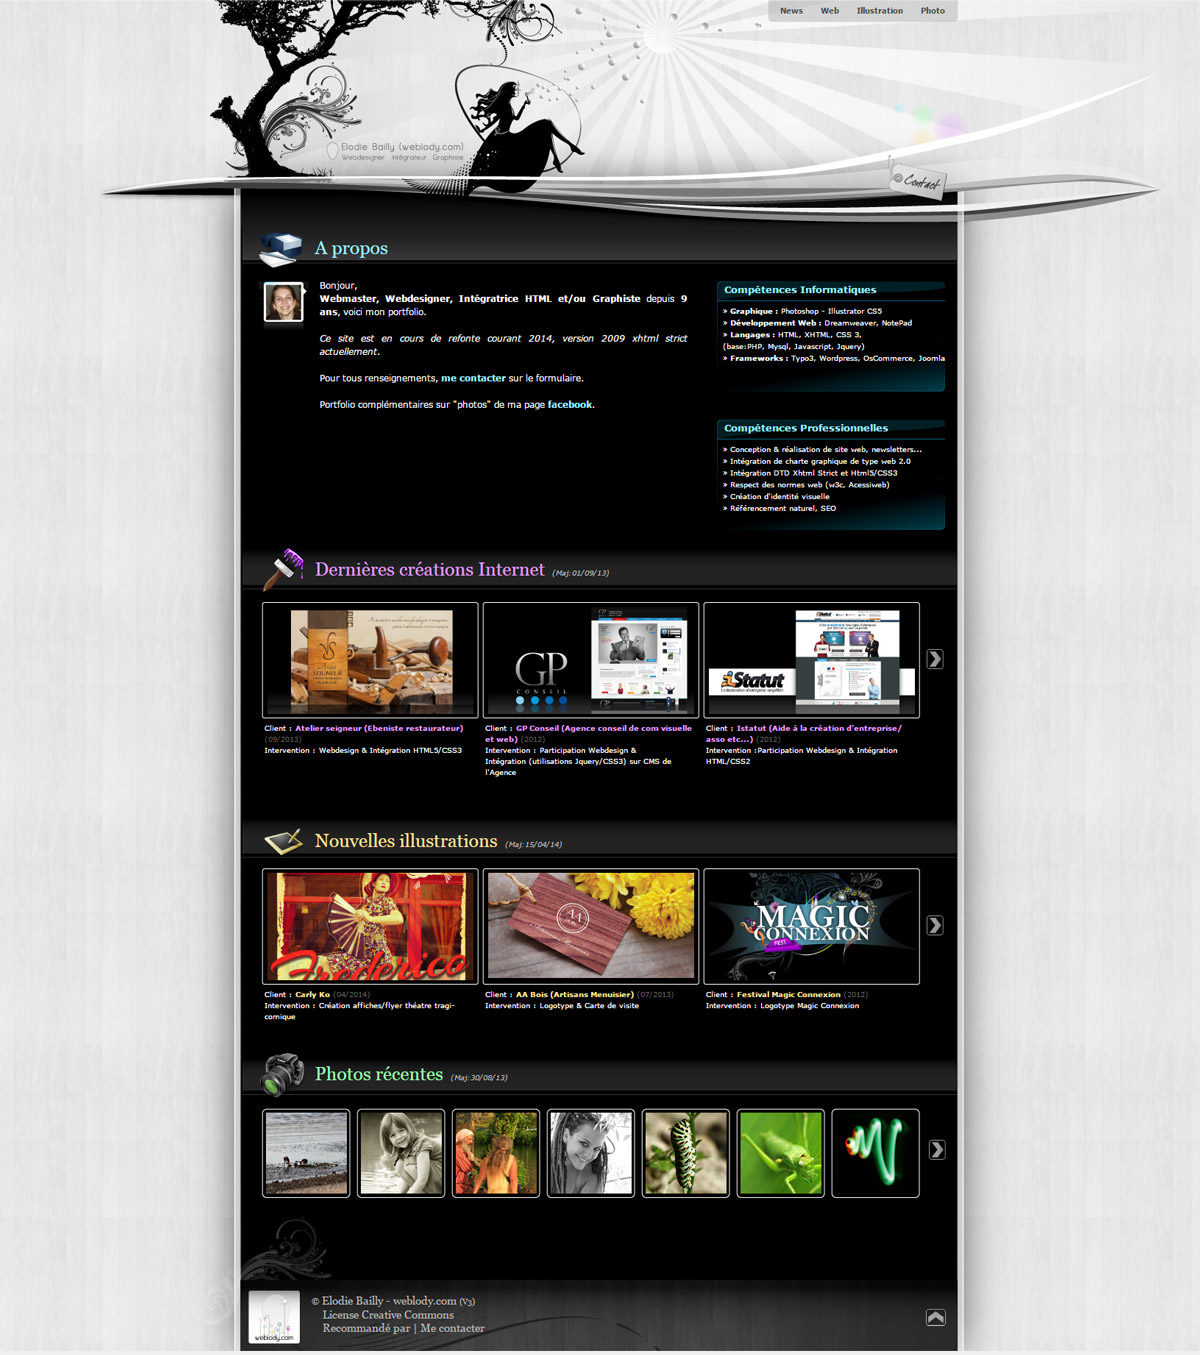 weblody.com, le site version n°3